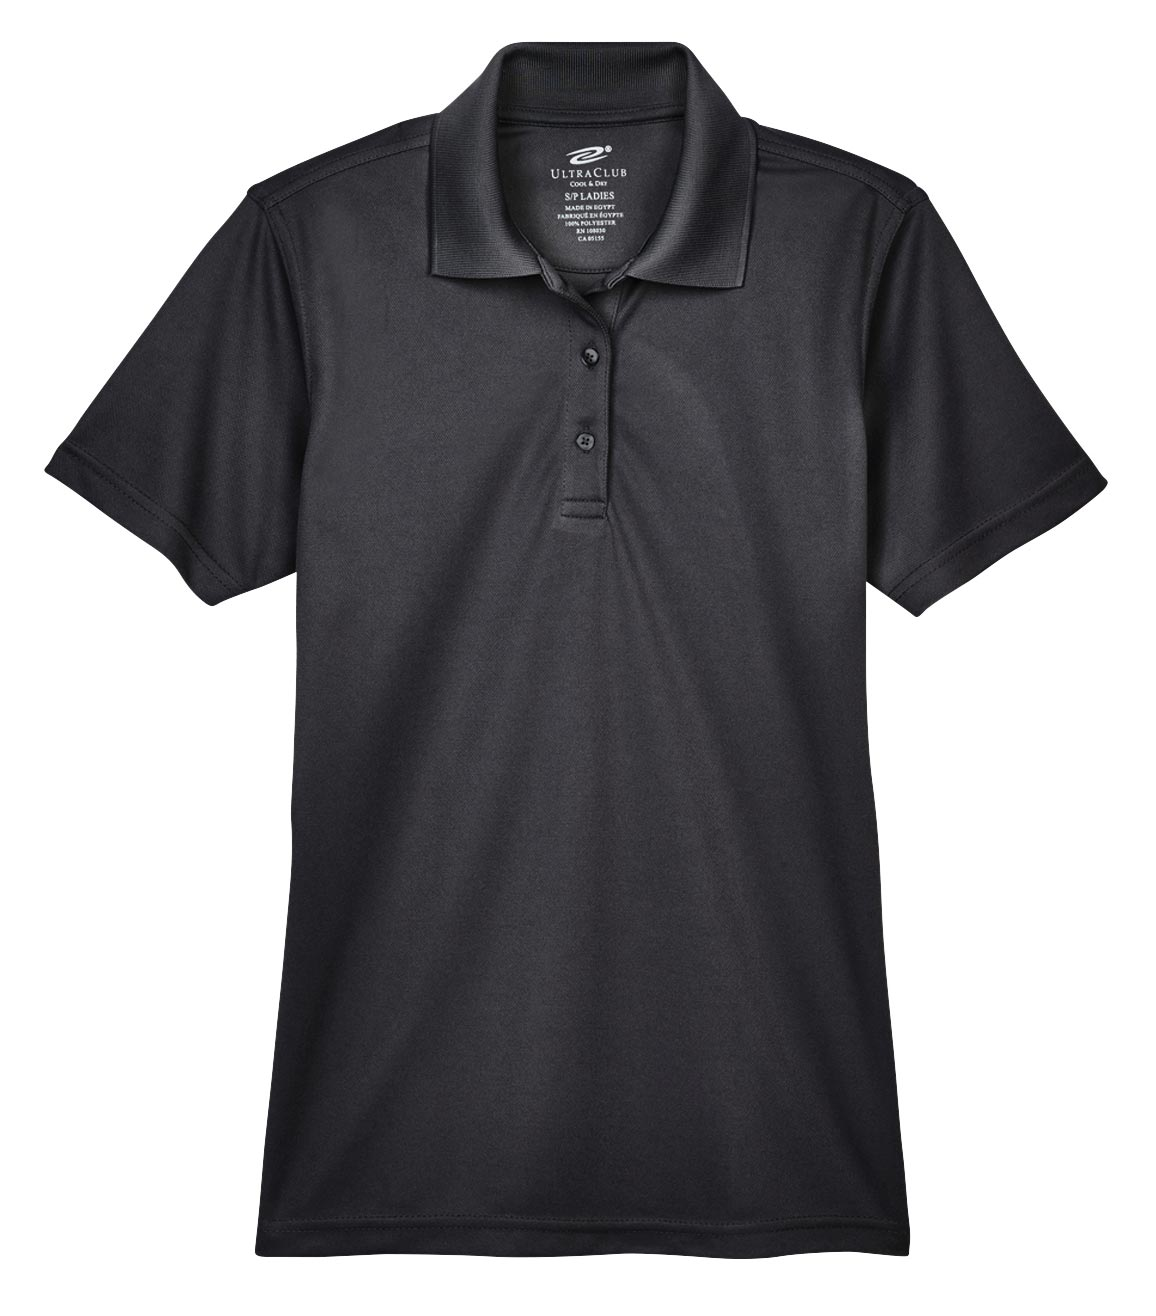 UltraClub Ladies Cool and Dry Mesh Pique Polo